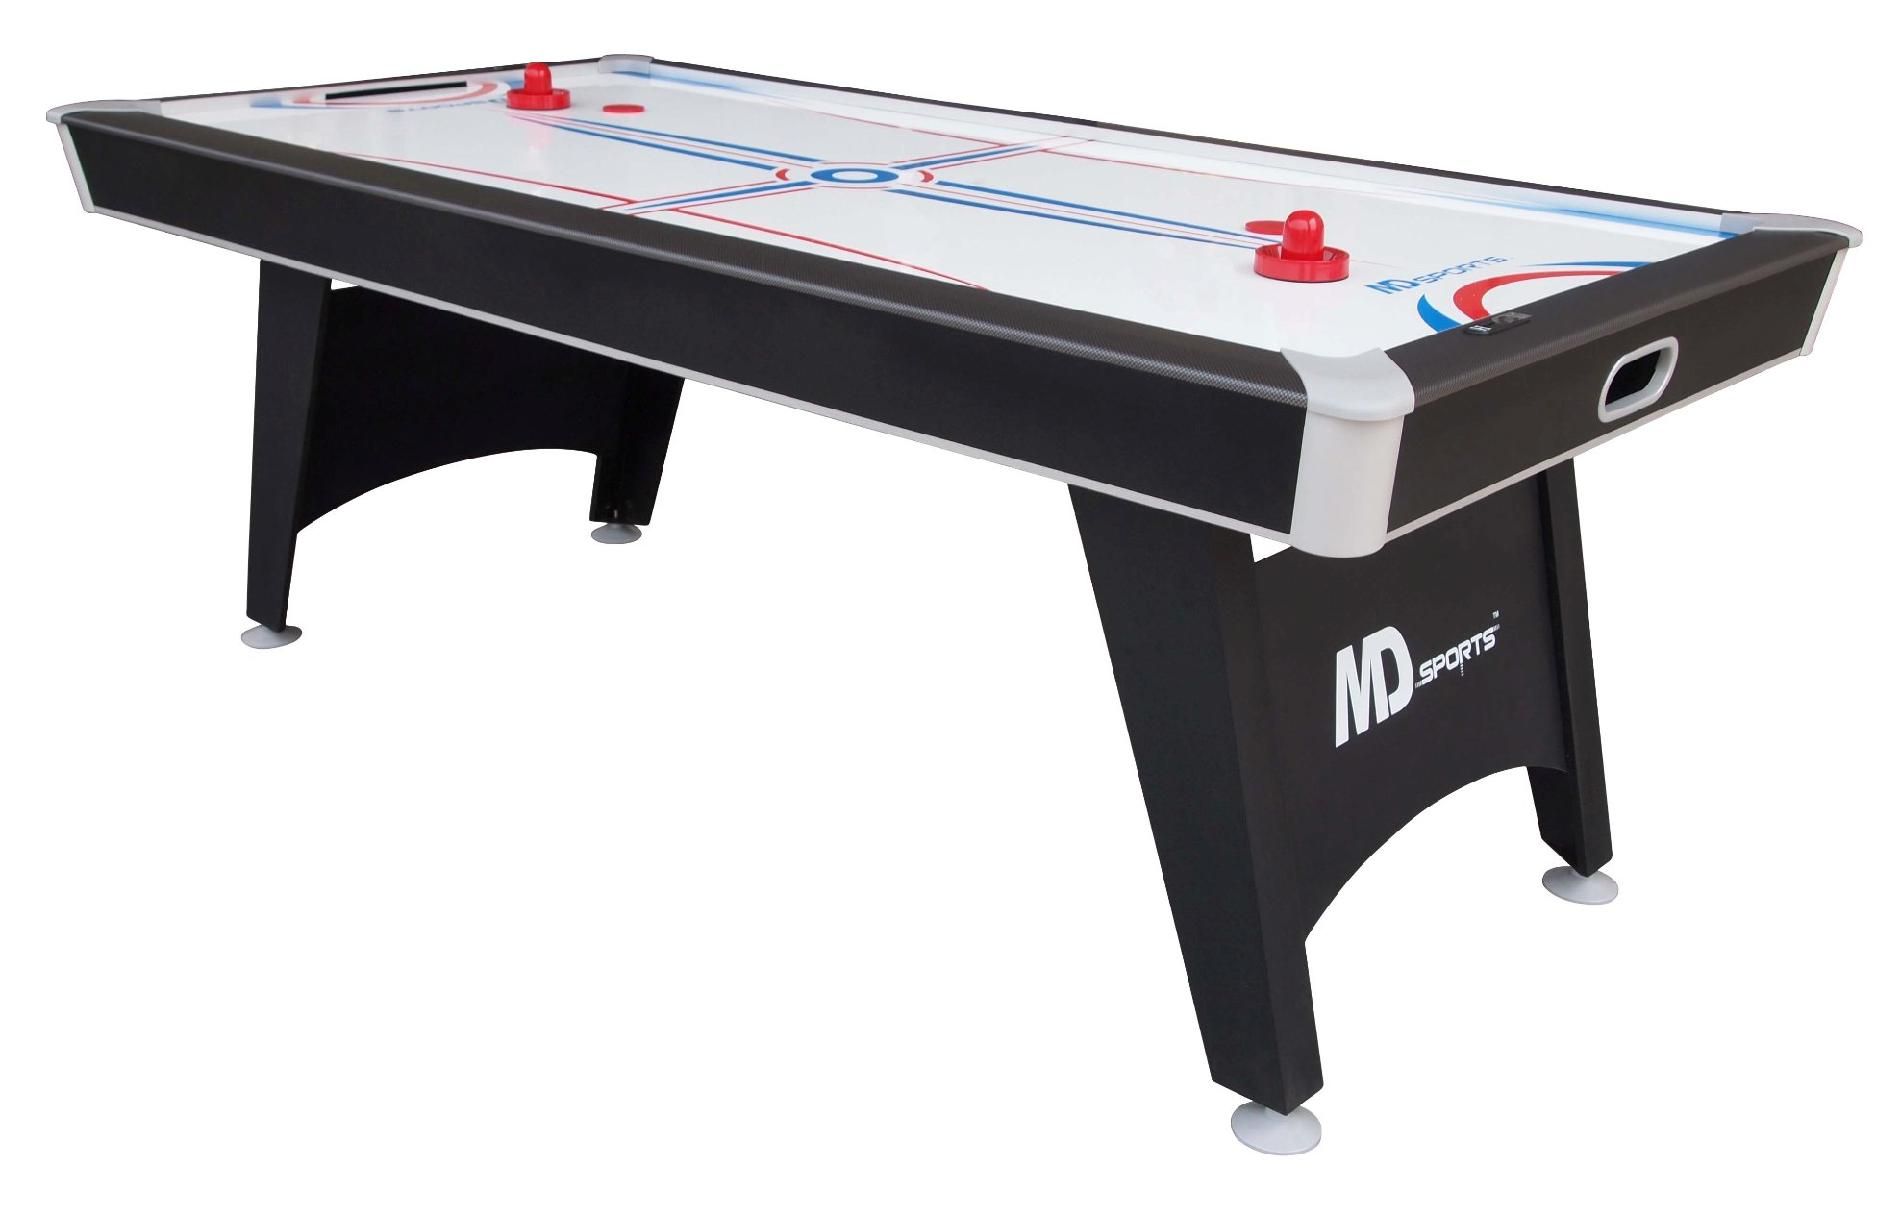 Tournament-Cup-7-ft-Air-Hockey-Table-with-Bonus-Table-Tennis-Top